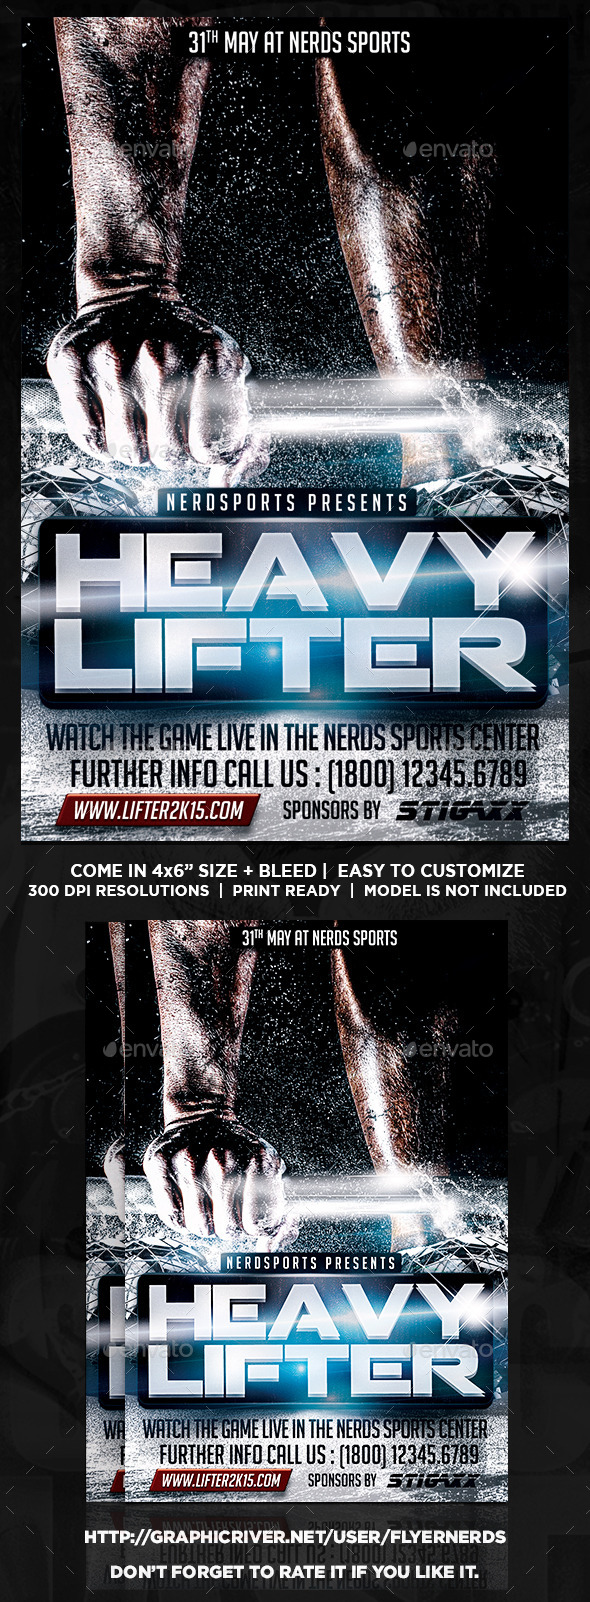 GraphicRiver Heavy Lifter 2K15 Championships Sports Flyer 10476885